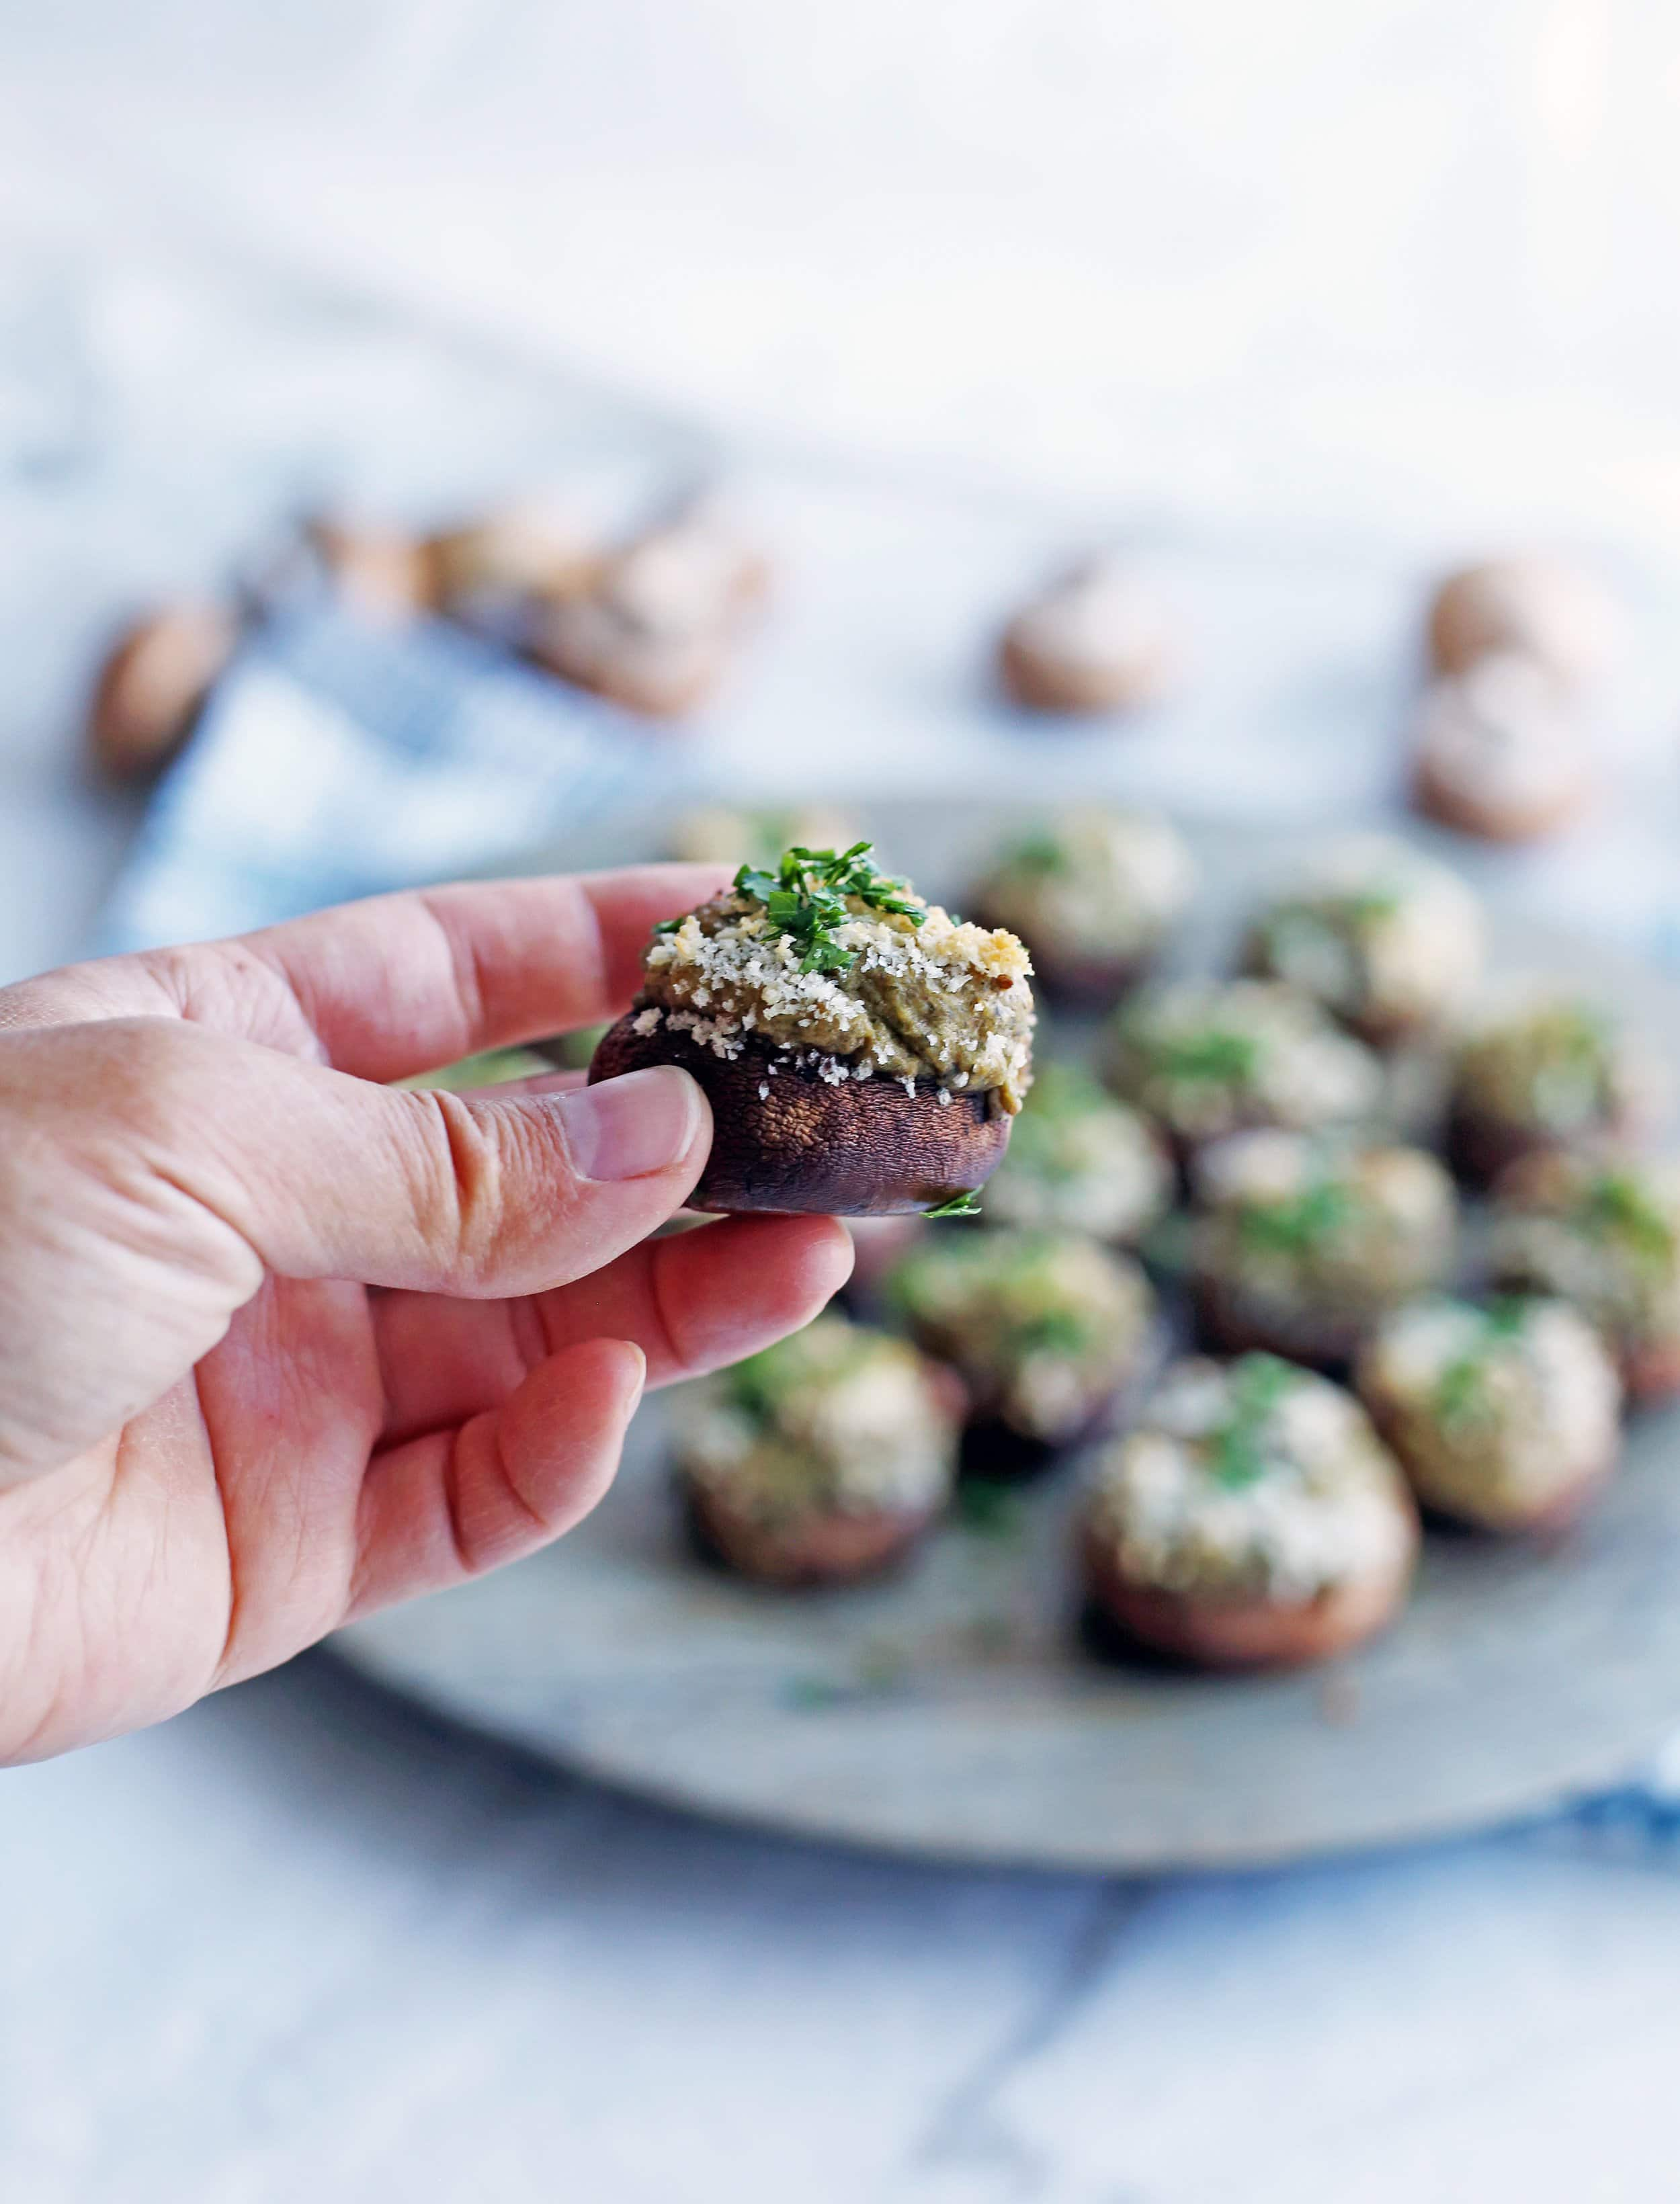 A hand holding a single baked stuffed mushroom on top of a platter containing more stuffed mushrooms.